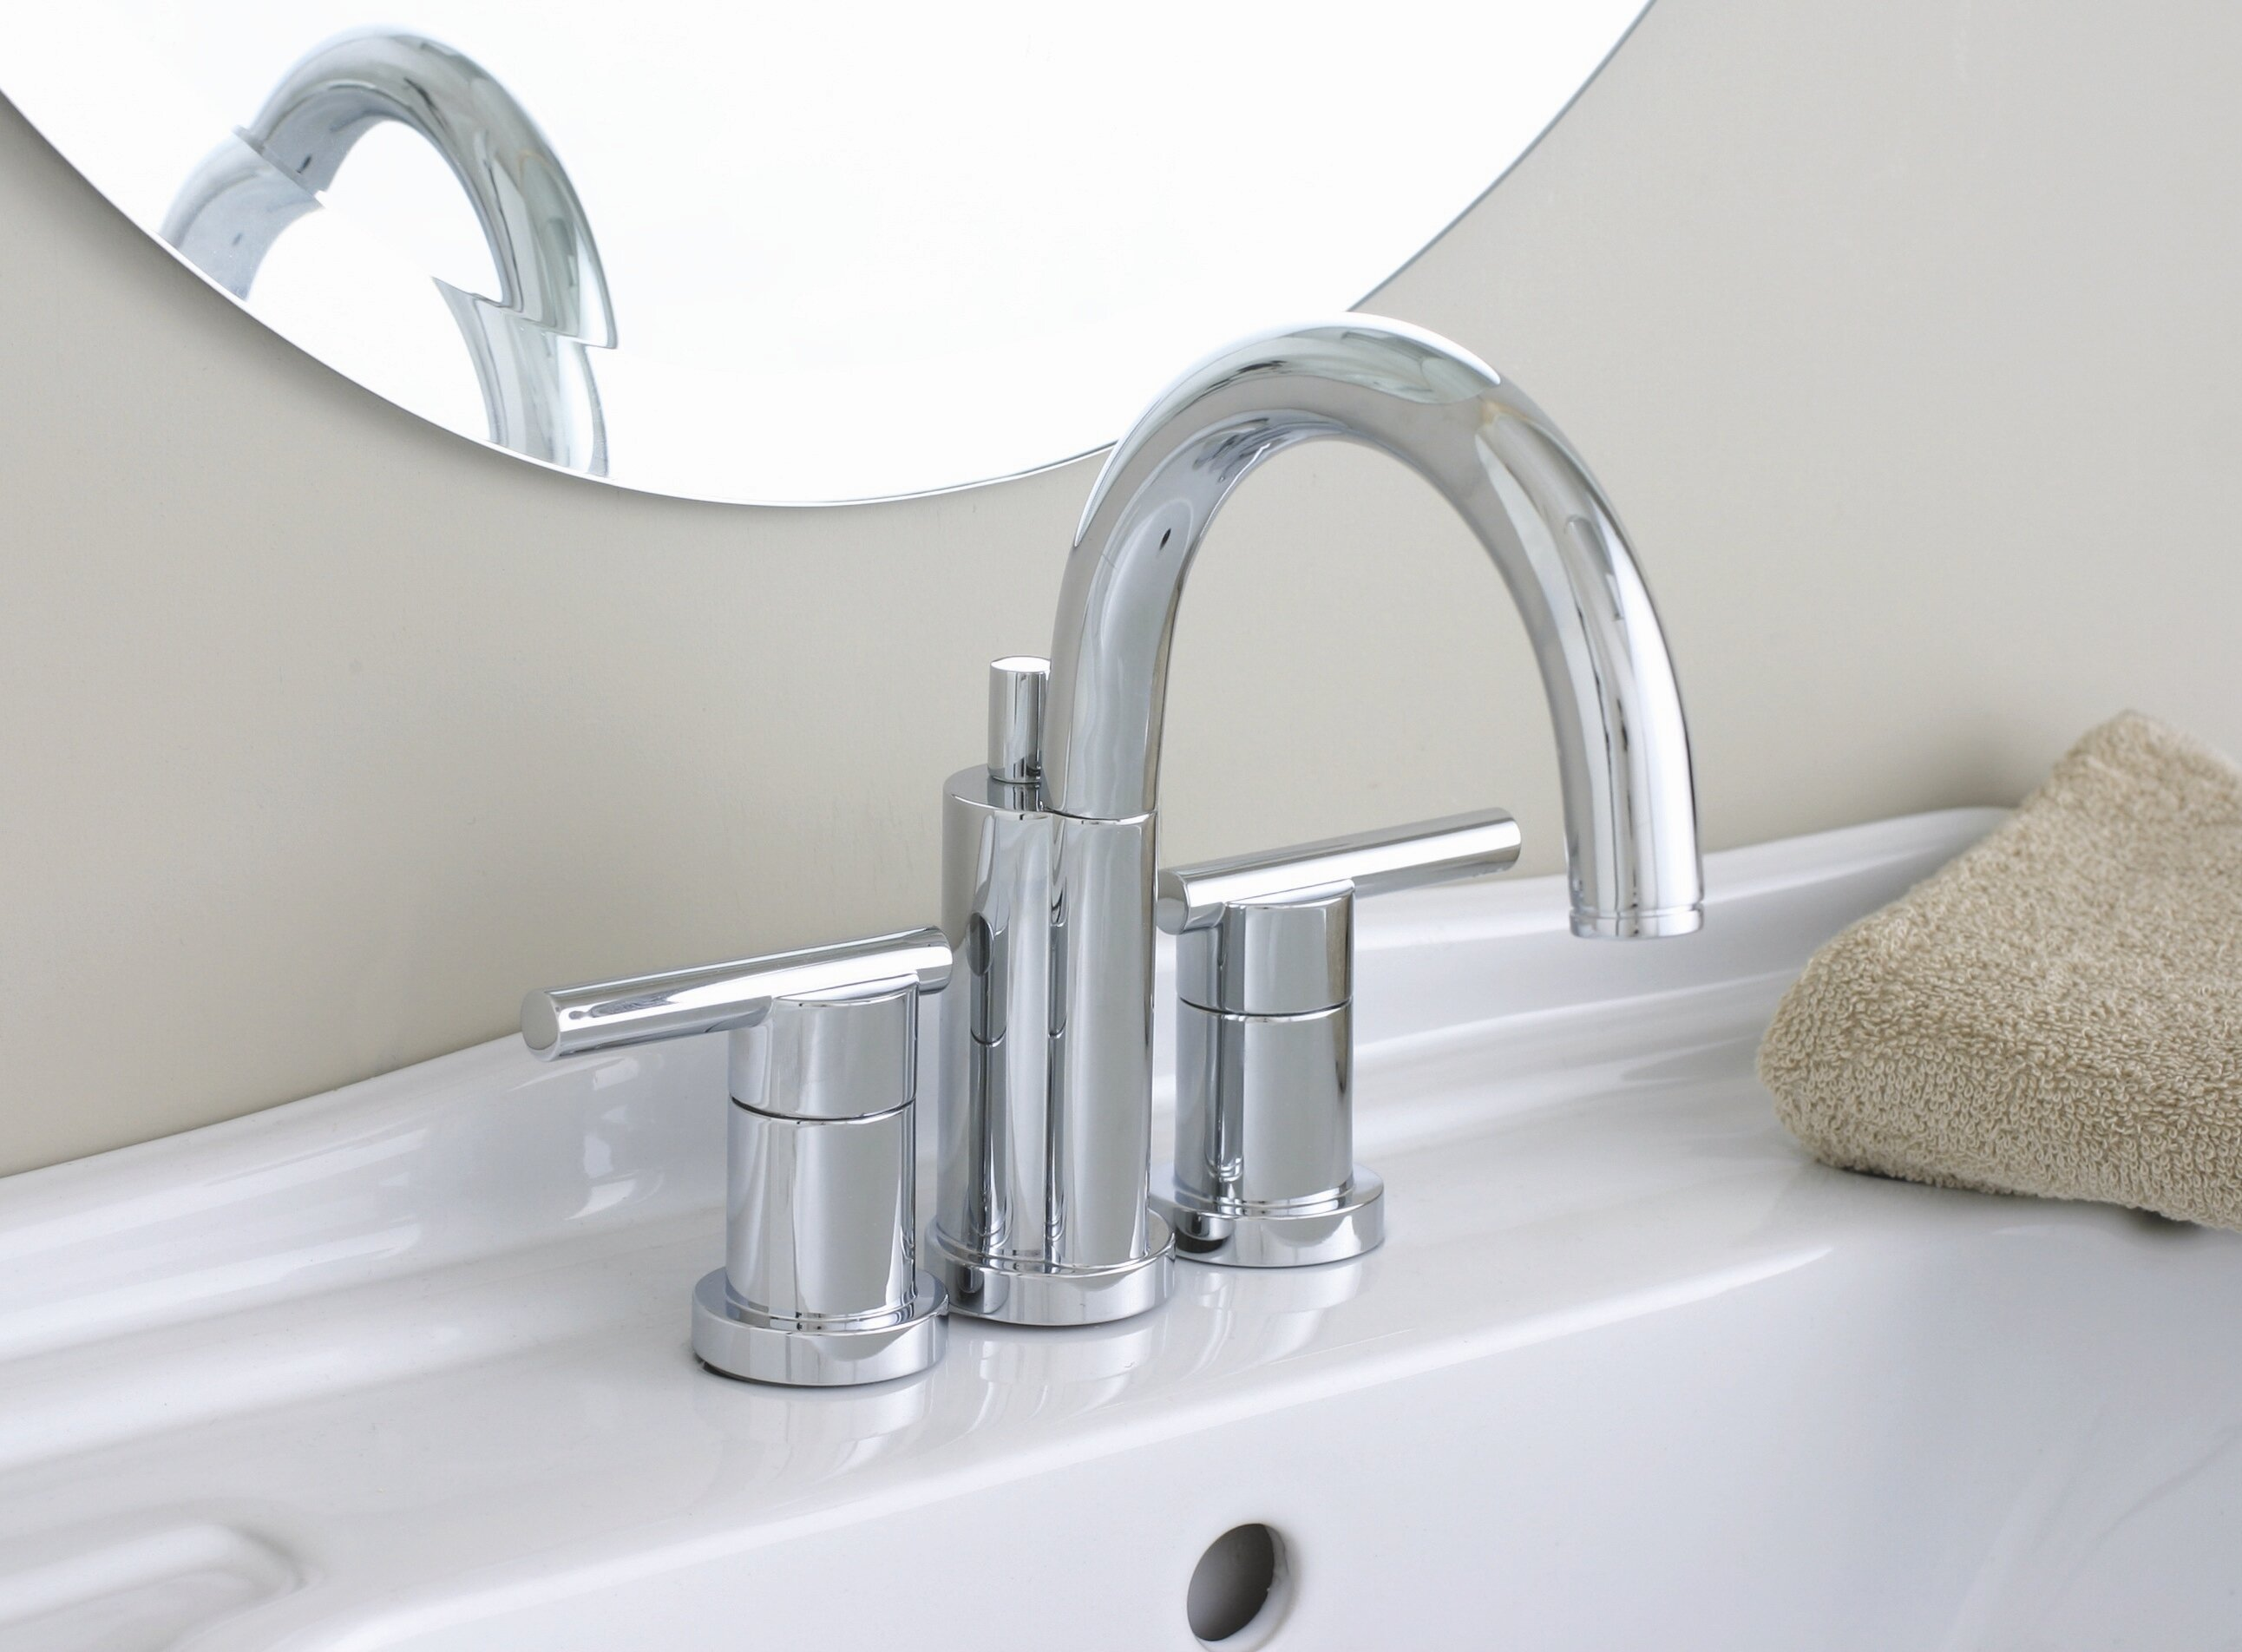 faucet lever aldora pl bathroom shop model handles lavatory sinks widespread orb porcelain